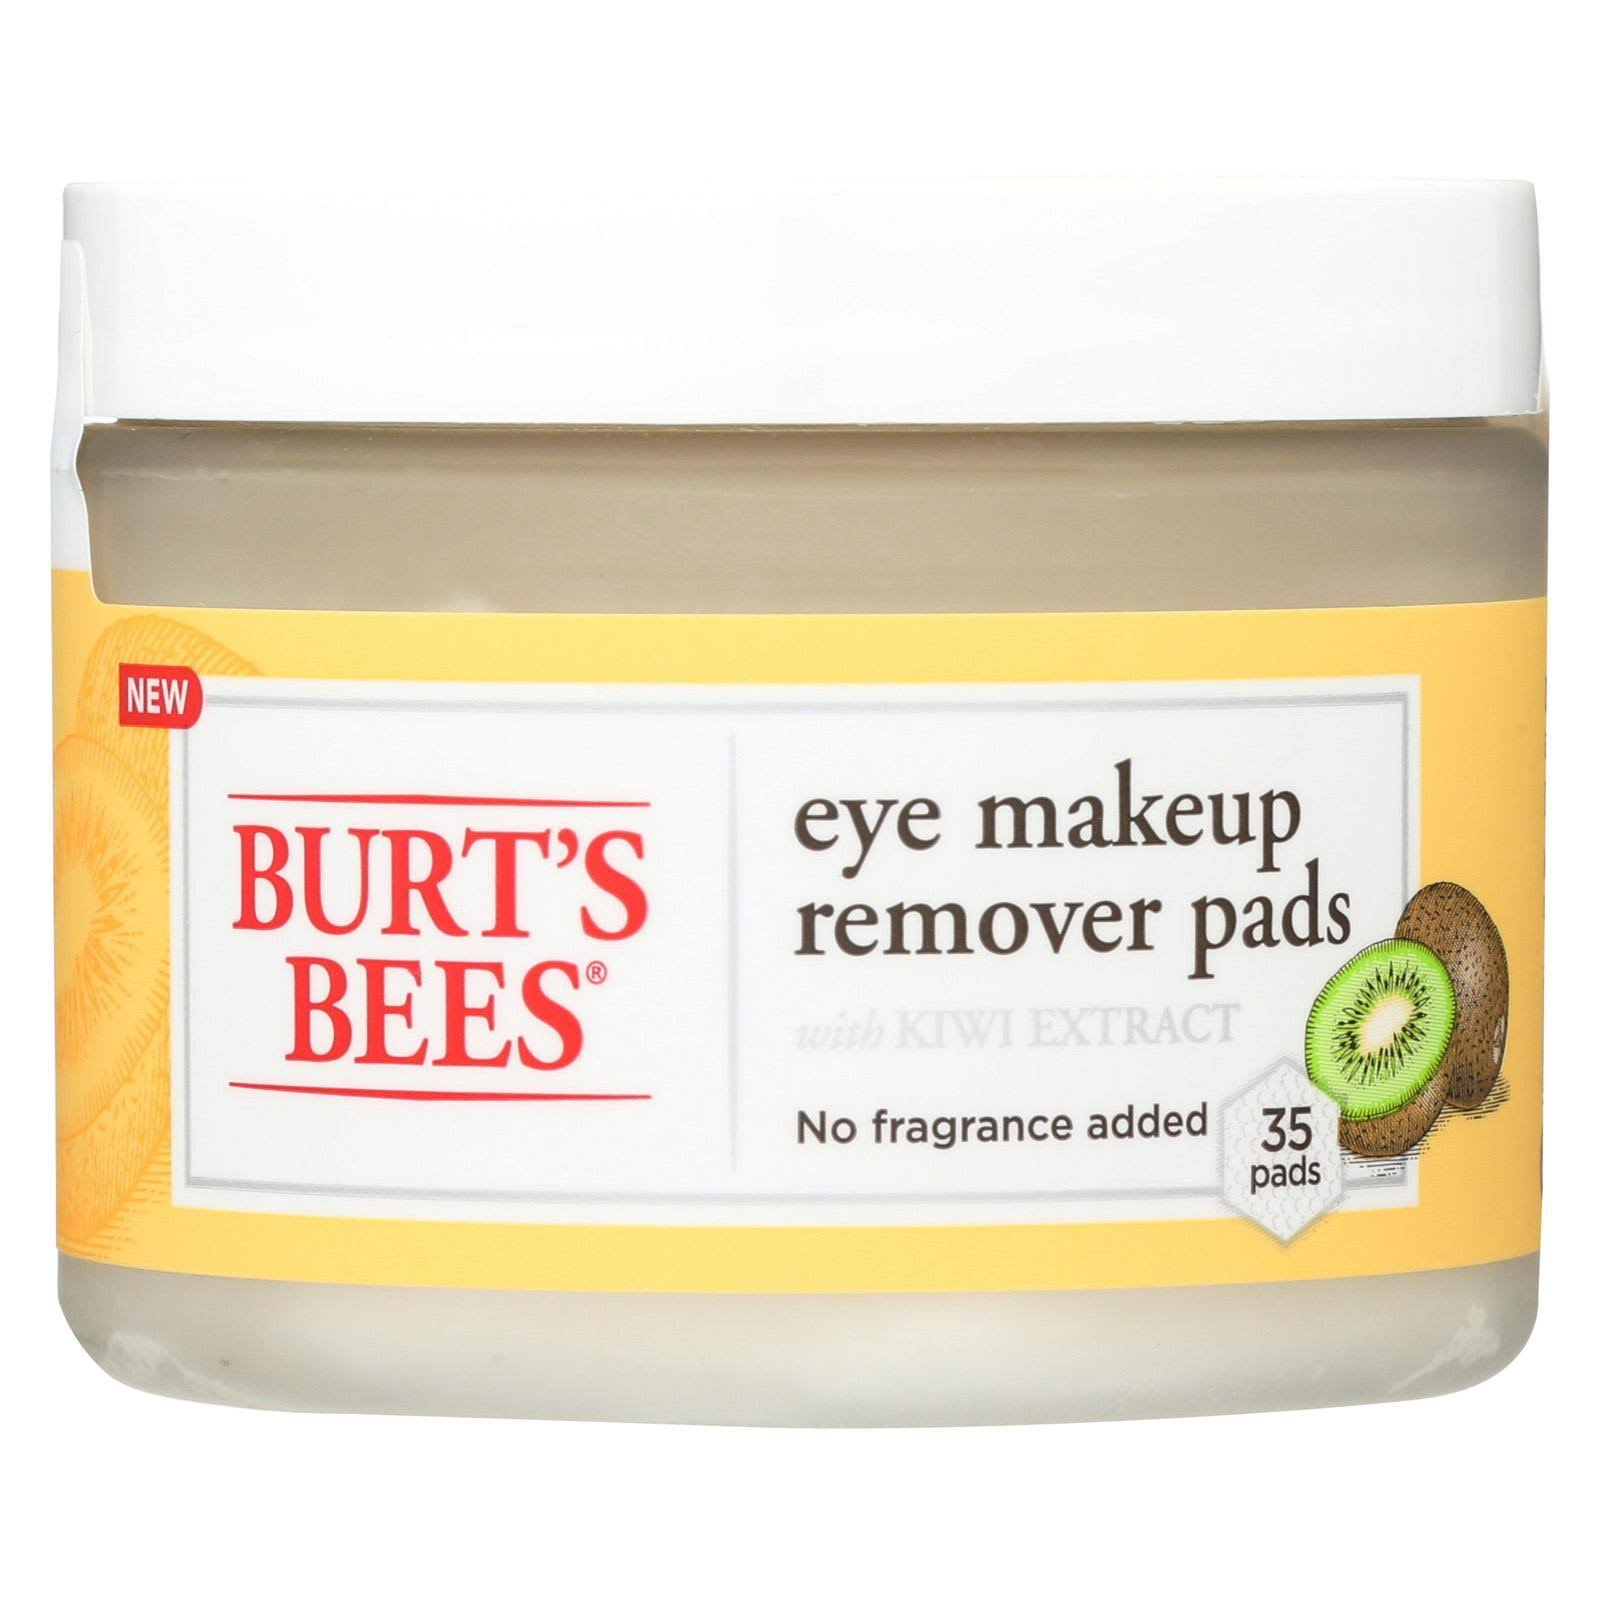 Burt's Bees Eye Makeup Remover Pads with Kiwi Extract - 35pk